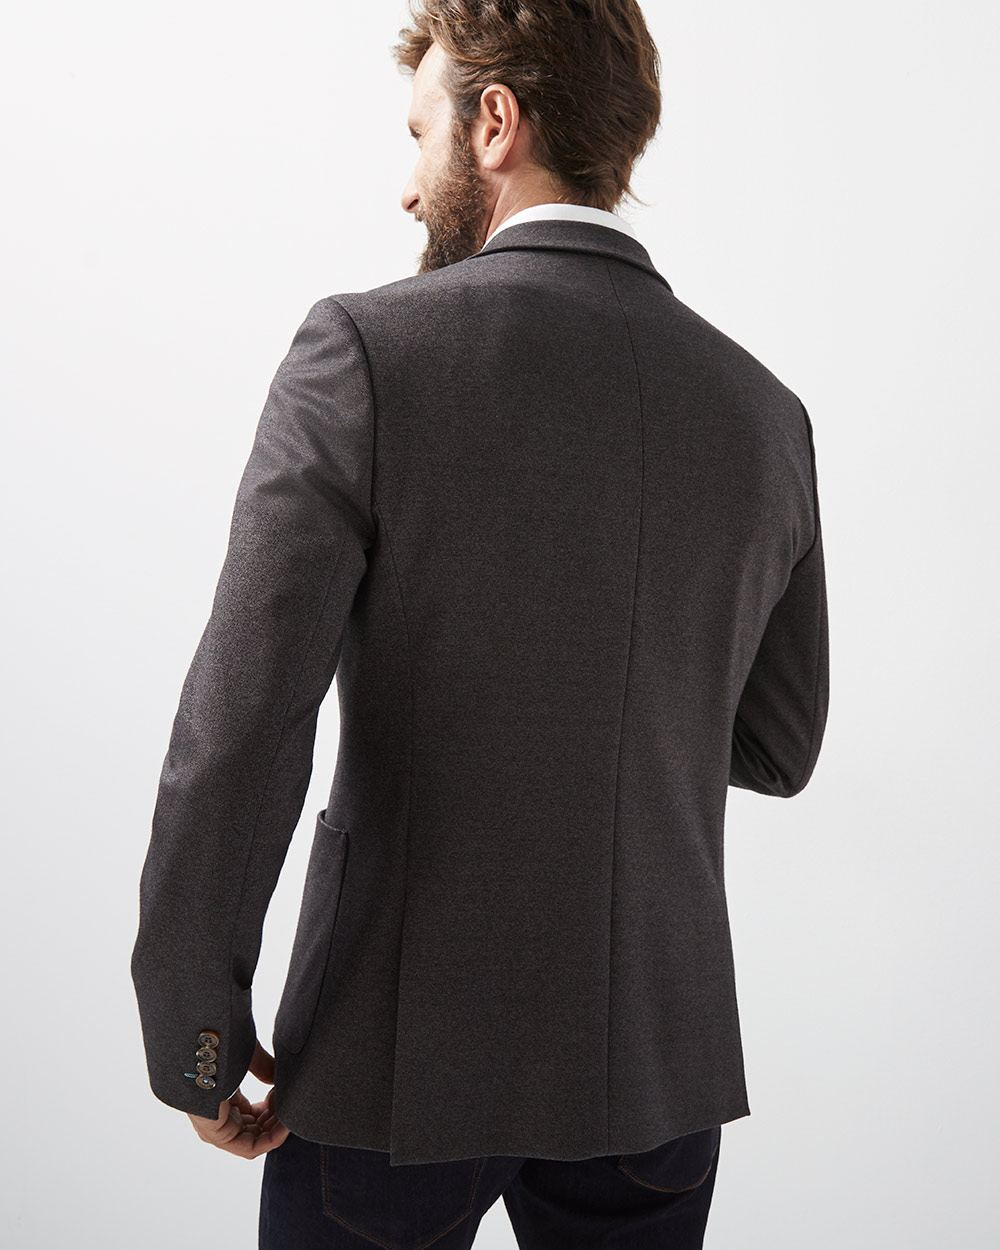 Slim Fit Twisted yarn Blazer